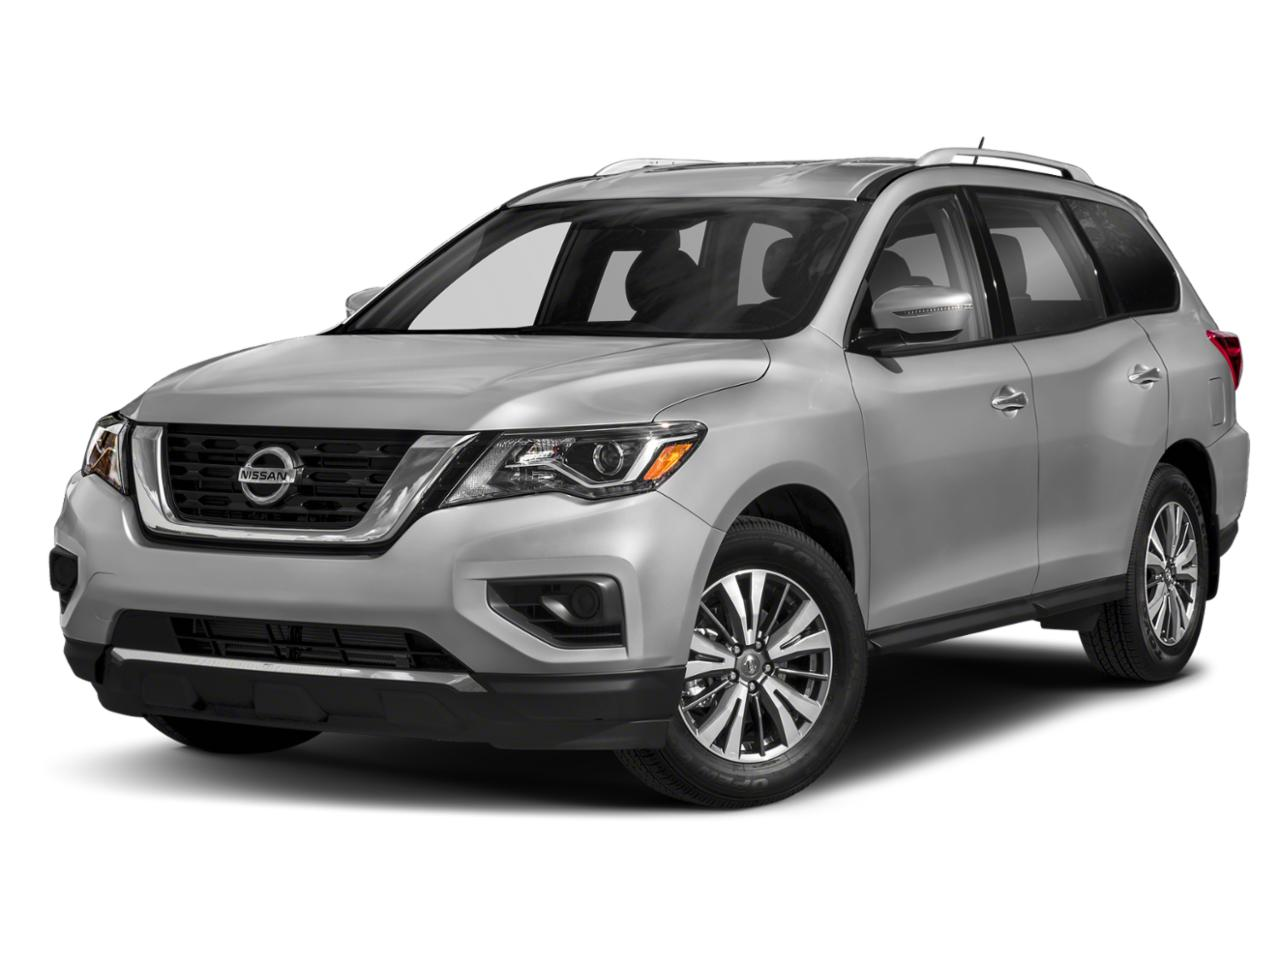 2019 Nissan Pathfinder Vehicle Photo in Mission, TX 78572